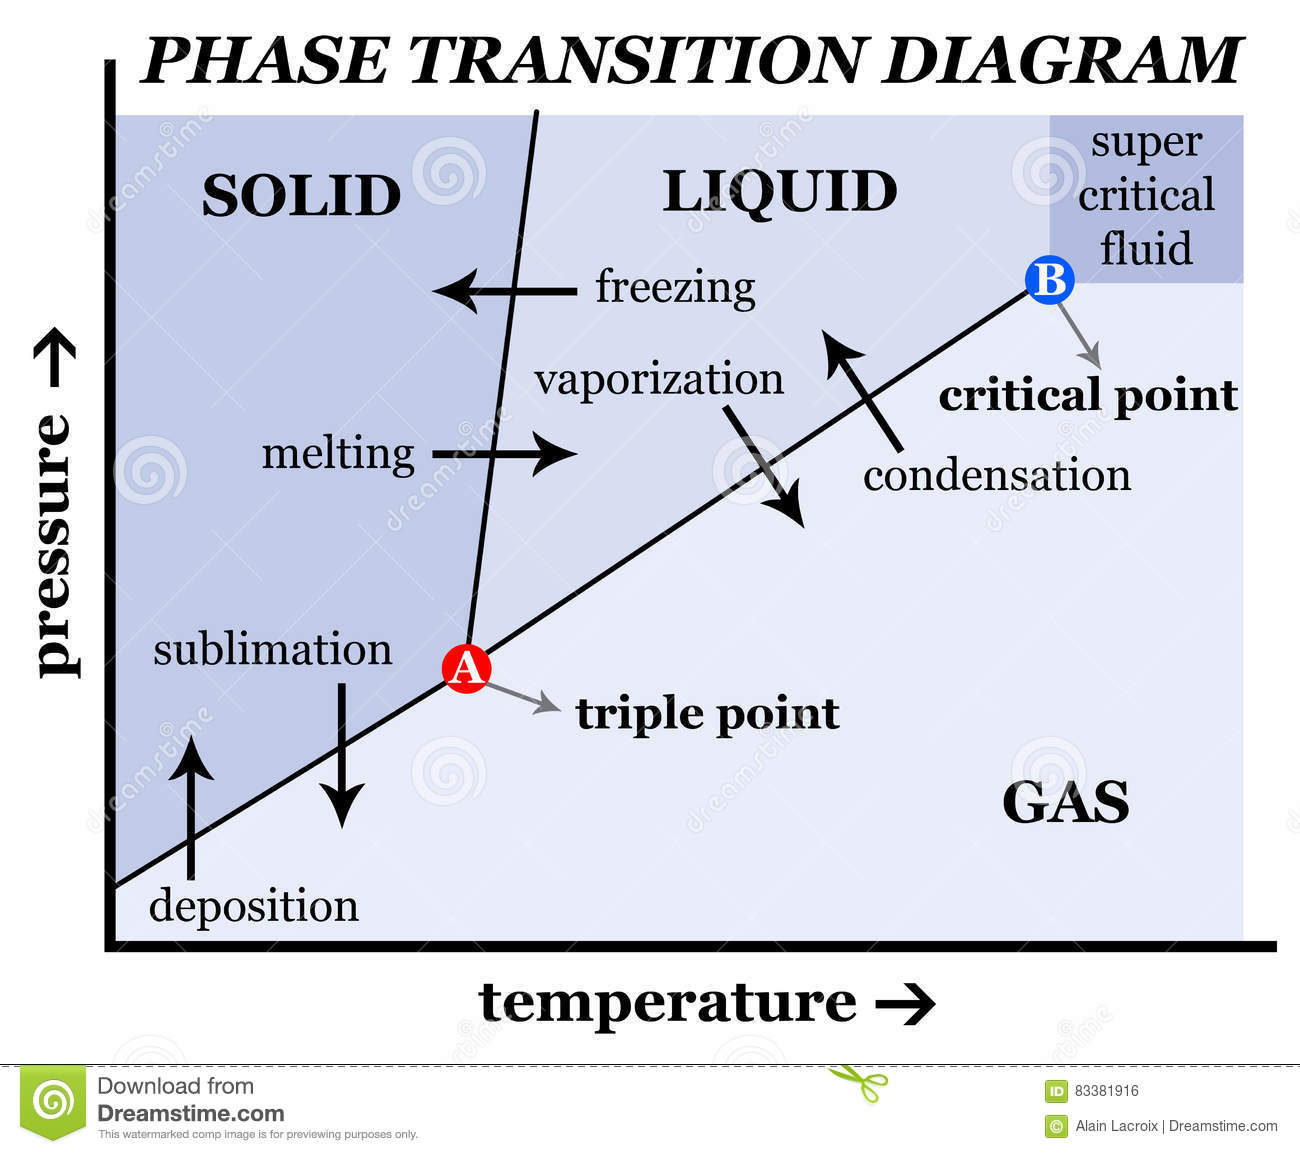 hight resolution of phase transition diagram describing pressure temperature transitions between solid liquid and gas